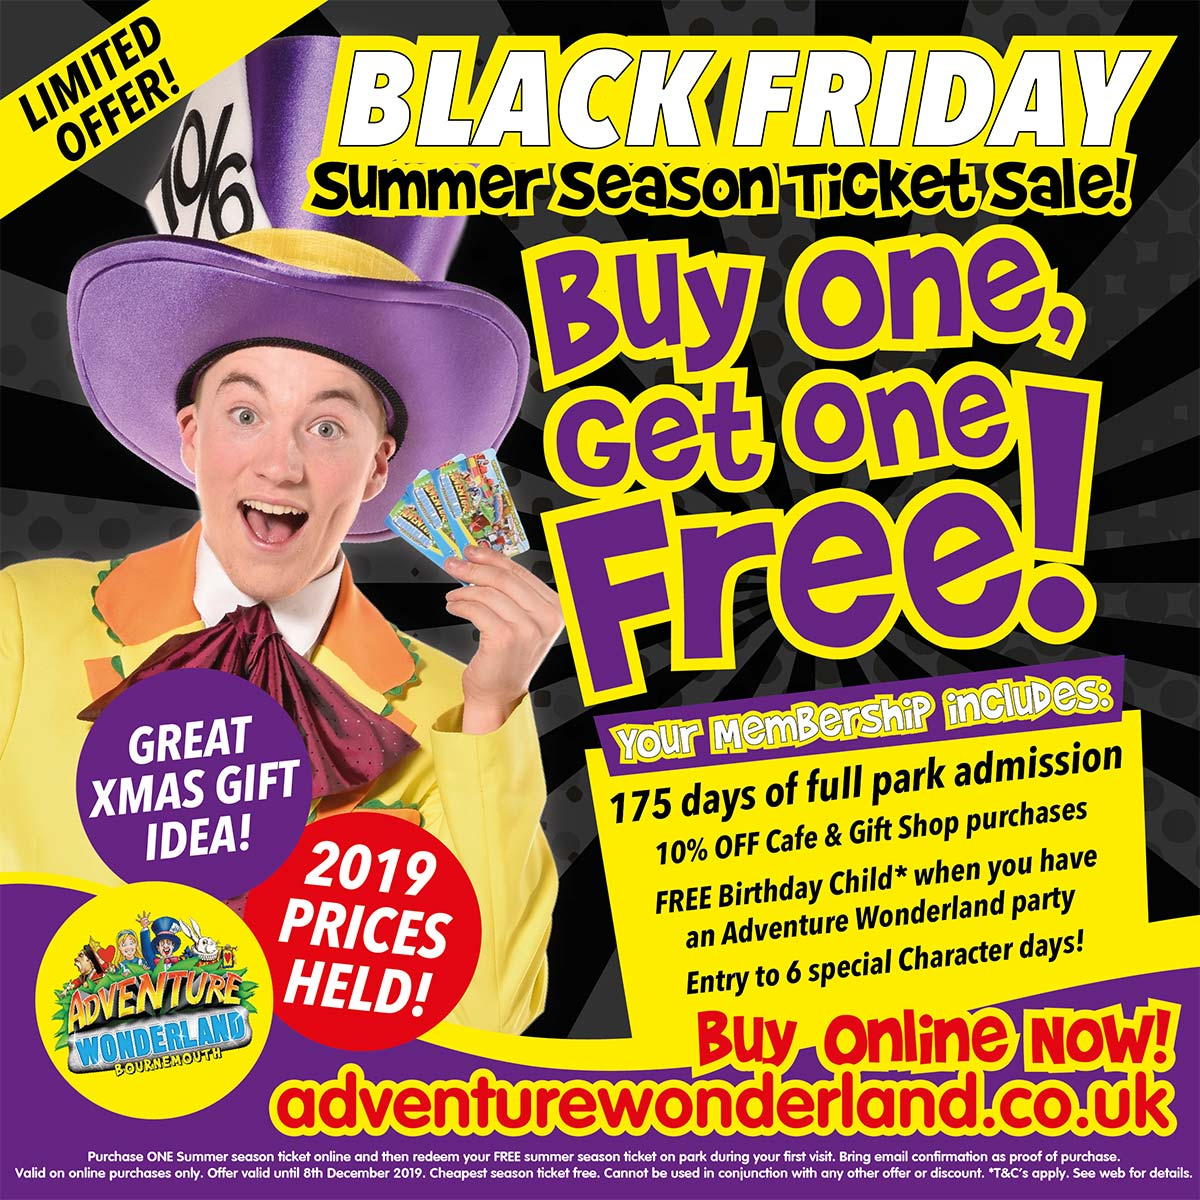 Adventure Wonderland Black Friday Ticket Offer